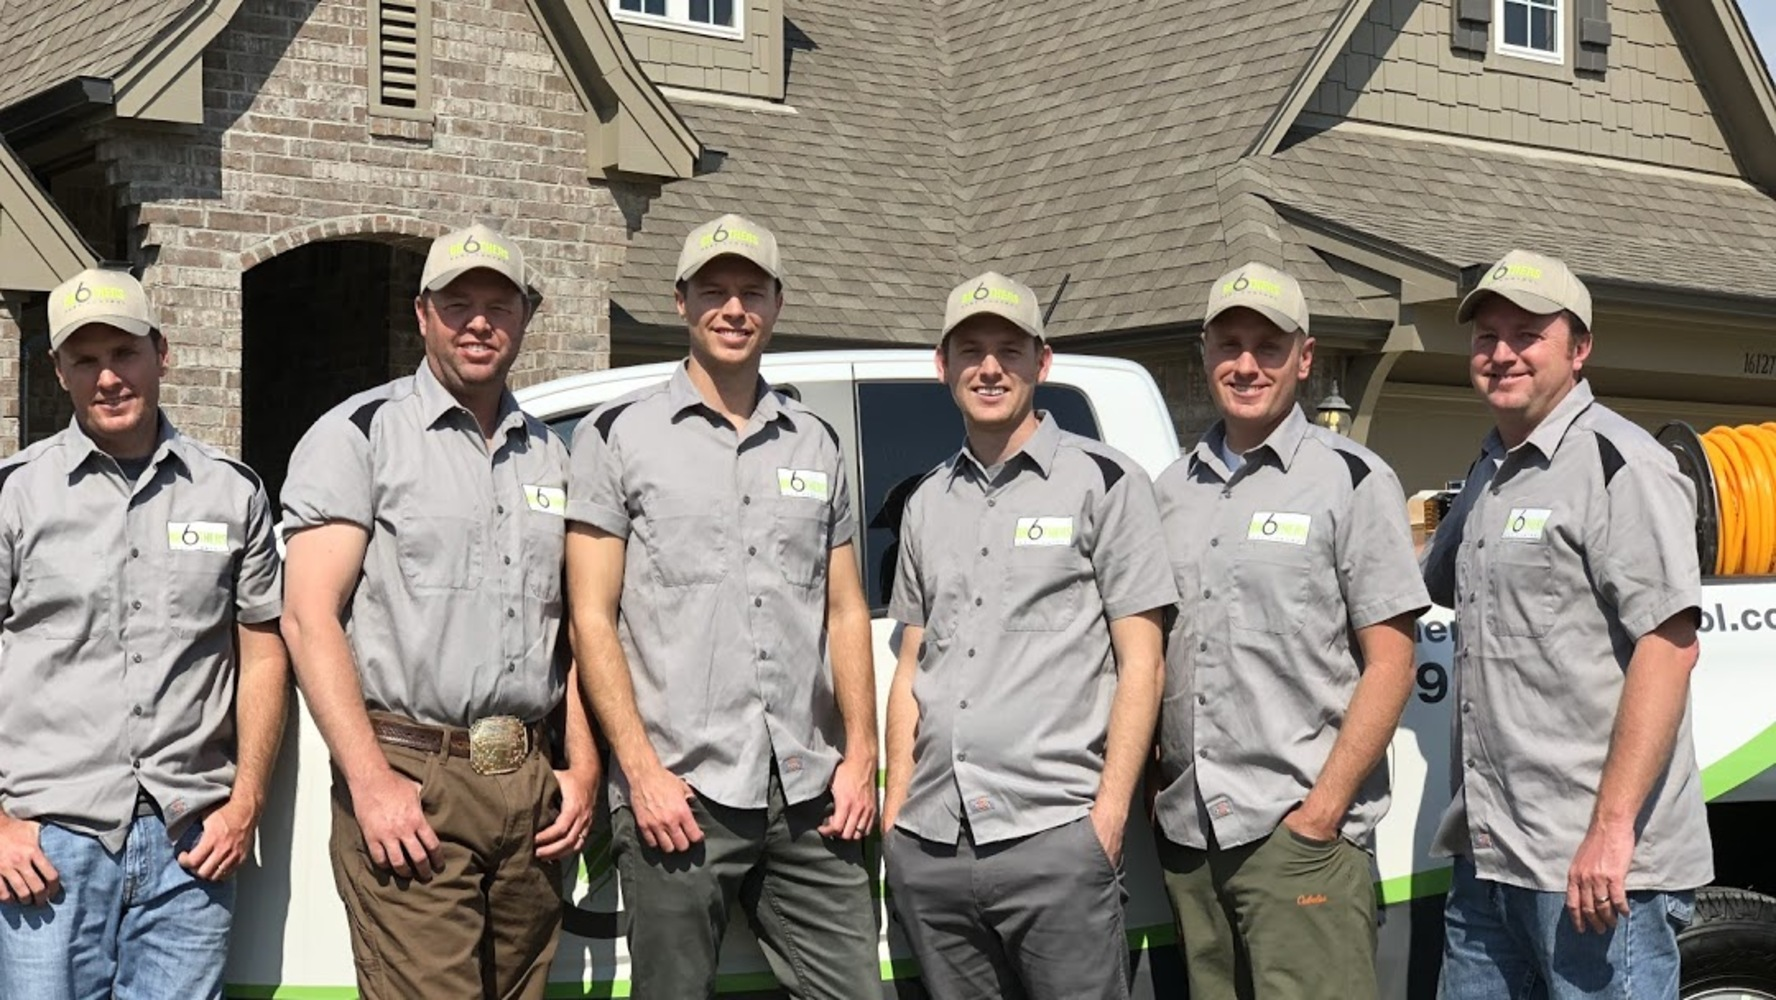 Six Brothers Pest Control Announces Company Name Change to Home Guard Pest Control